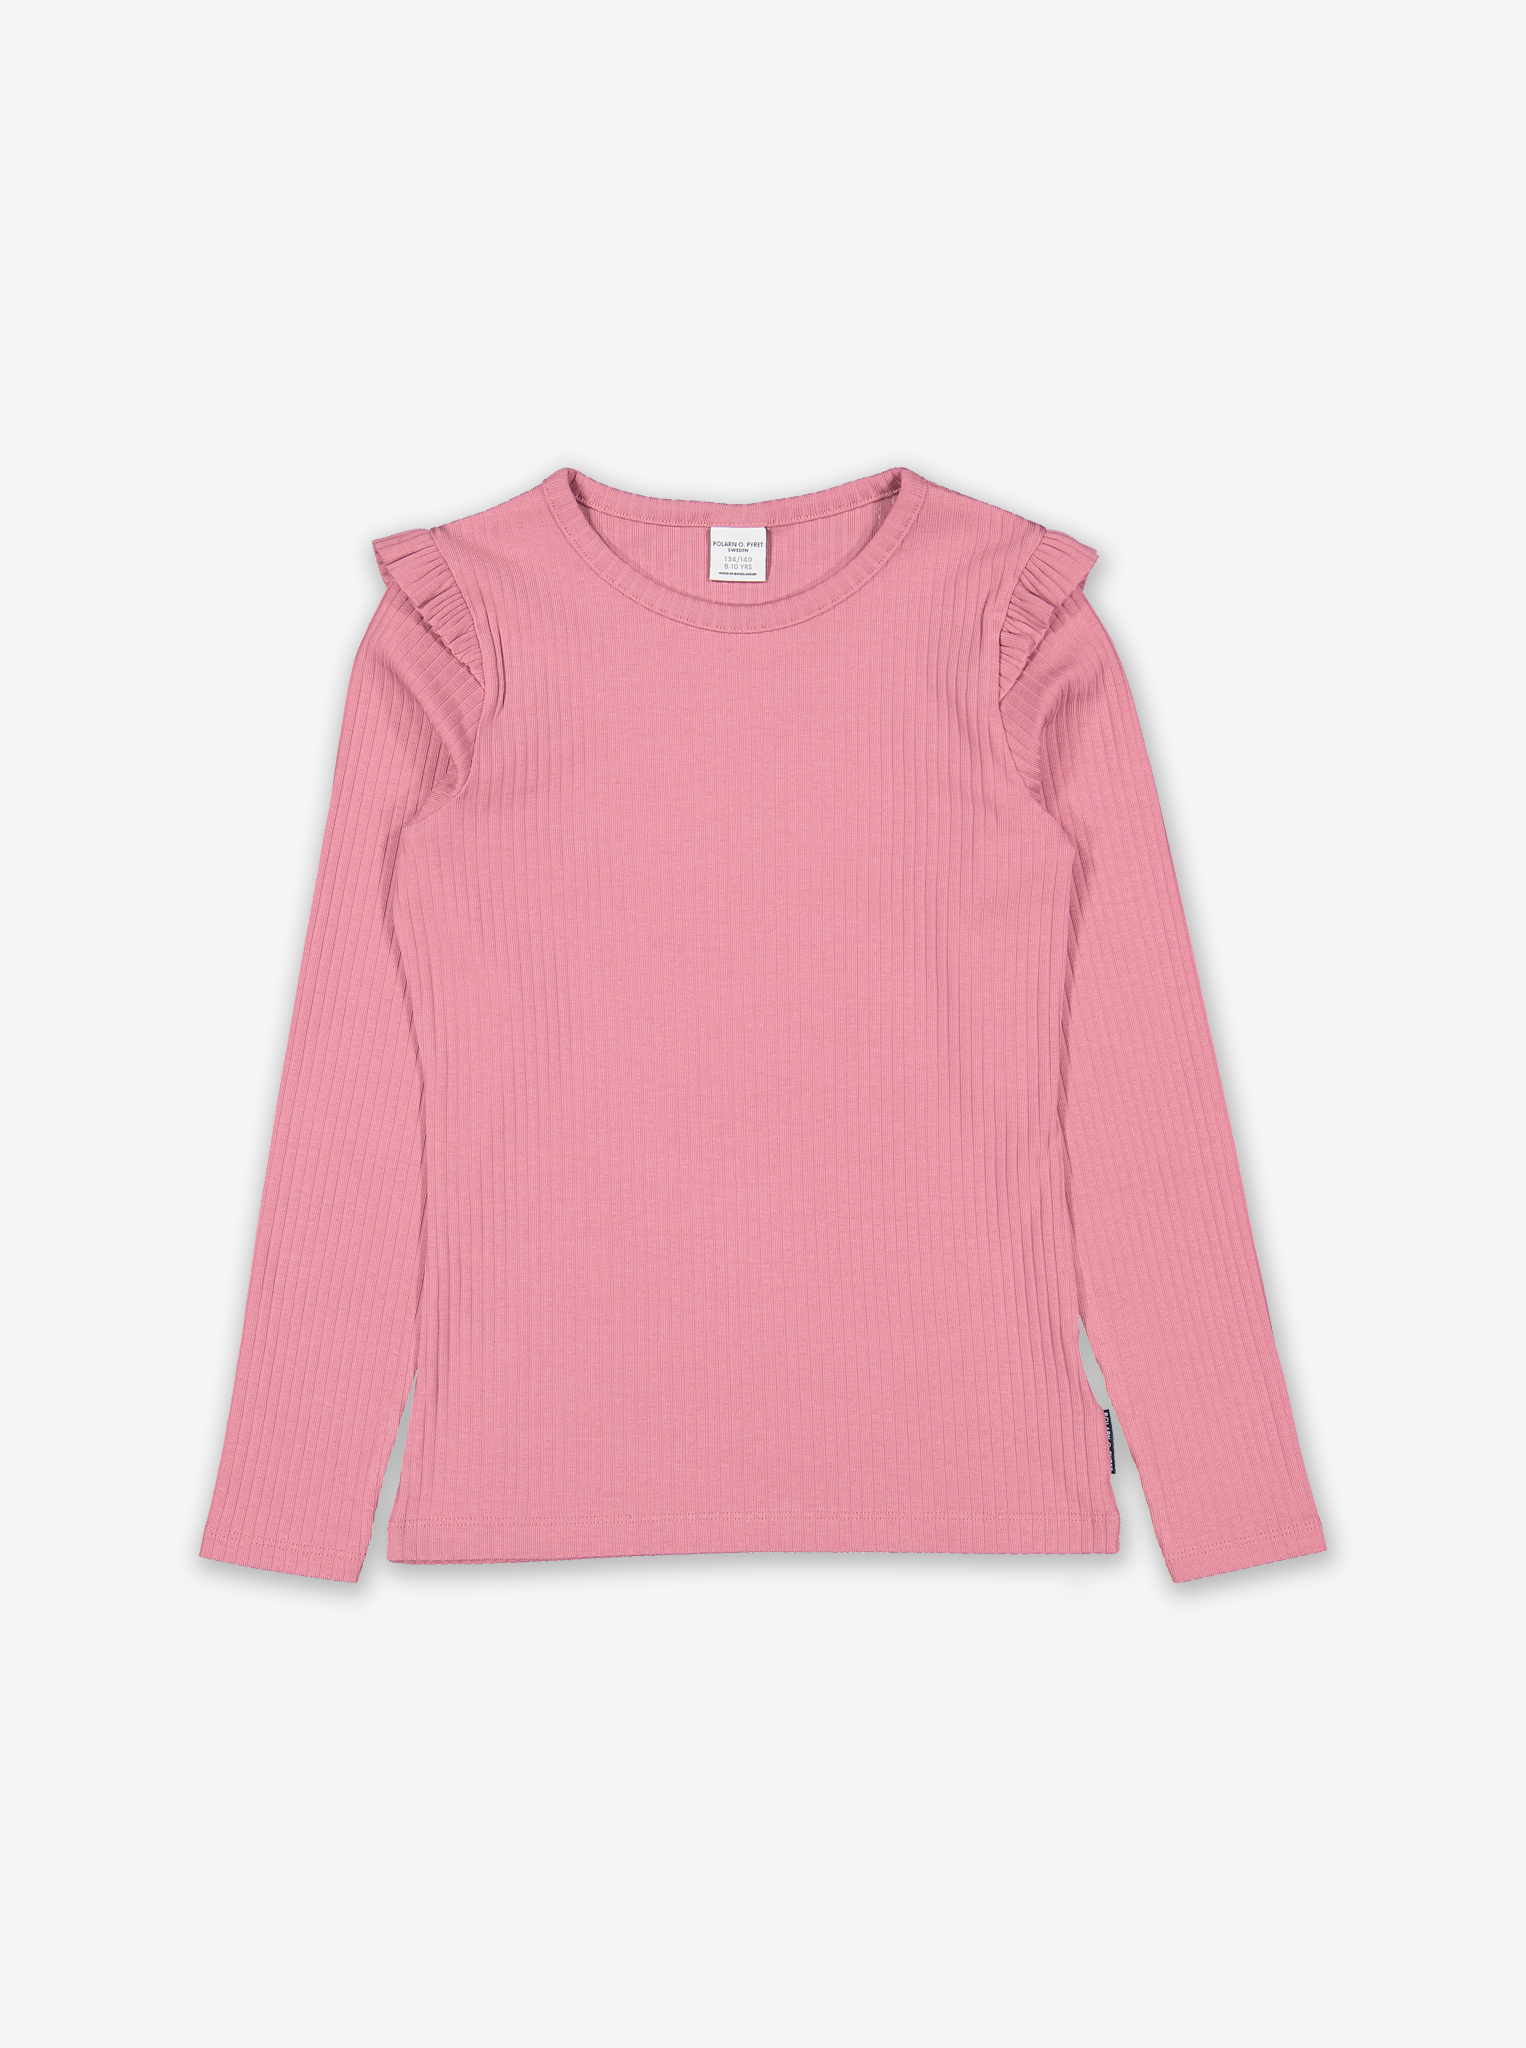 Ribbed Kids Top-Girl-1-12y-Pink